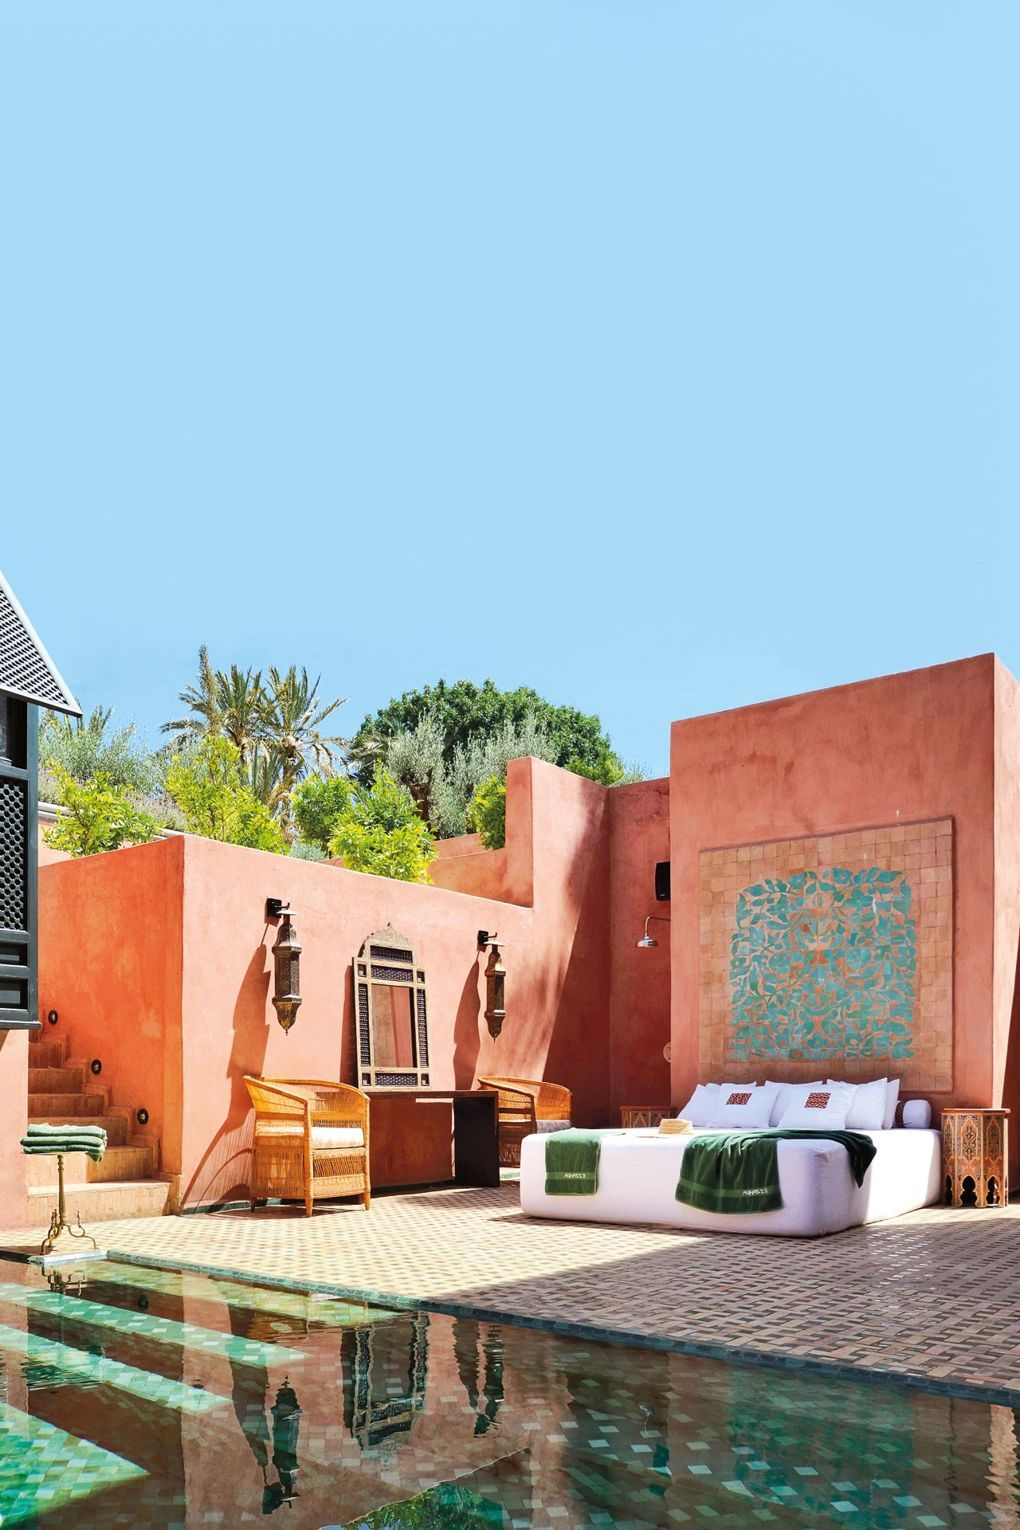 The most beautiful travel pictures of Morocco is part of Travel Pictures Of Morocco Cn Traveller - Travel pictures of Morocco pretty riads, swimming pools and arched windows, desert landscapes and views from the rooftops of Morocco's kasbahs, all photographed exclusively for Condé Nast Traveller